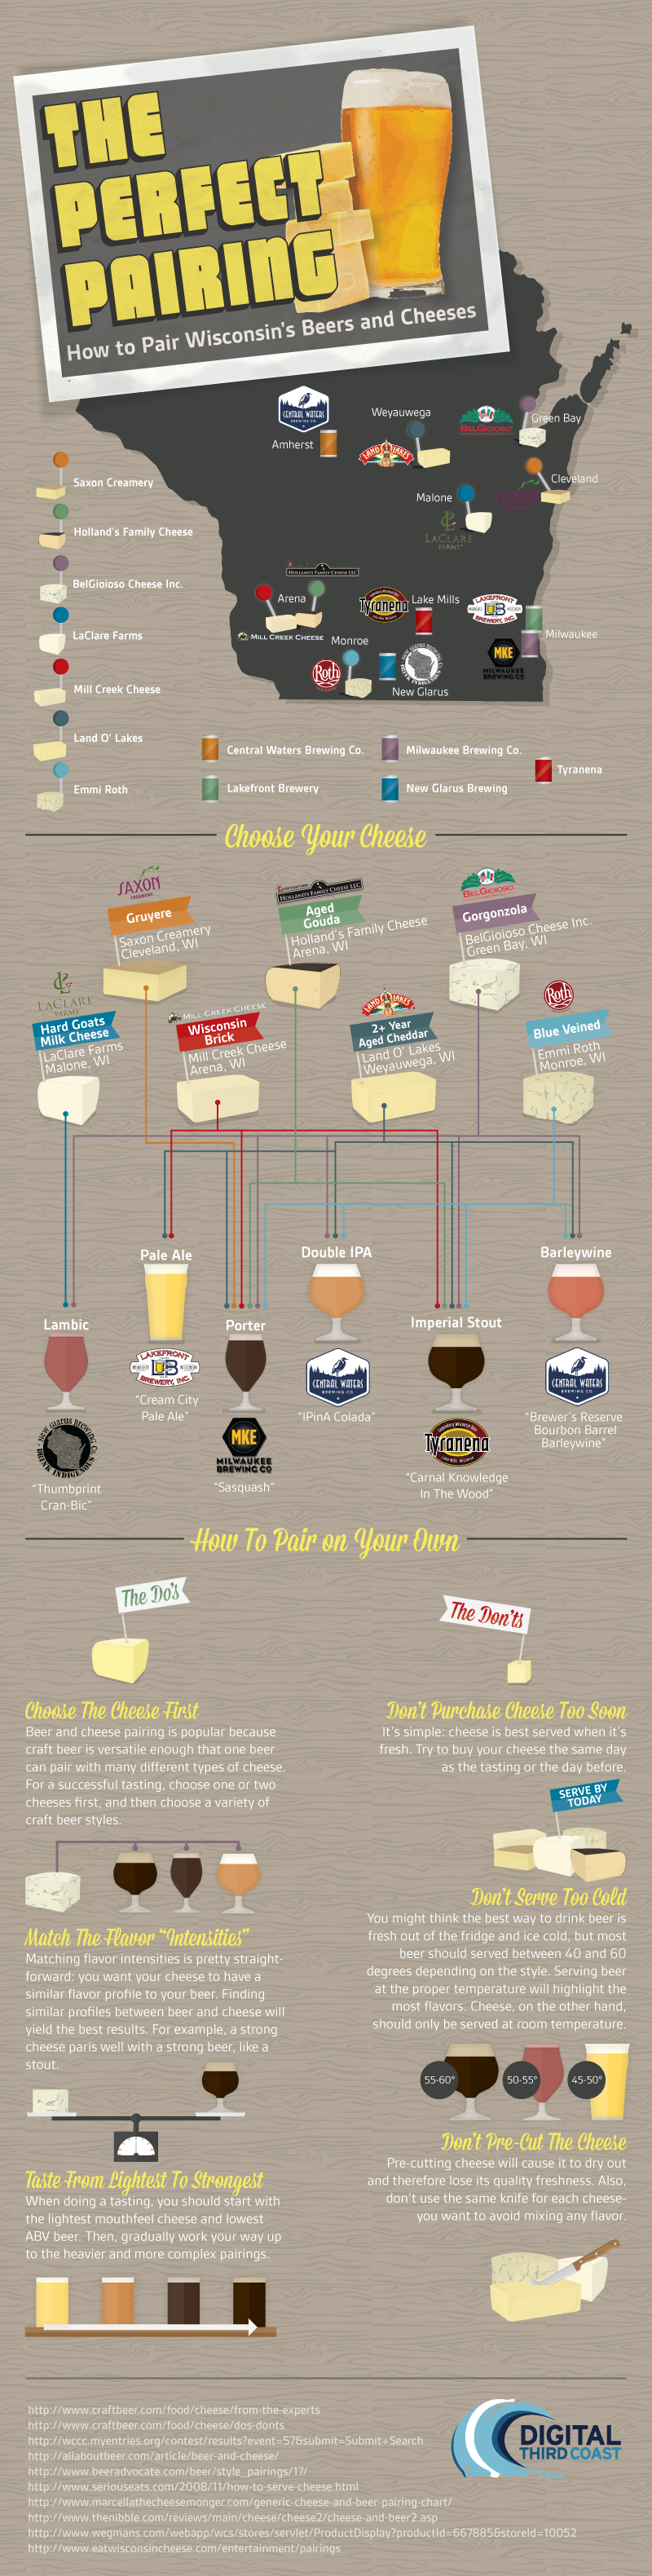 Wisconsin beer and cheese pairings infographic.